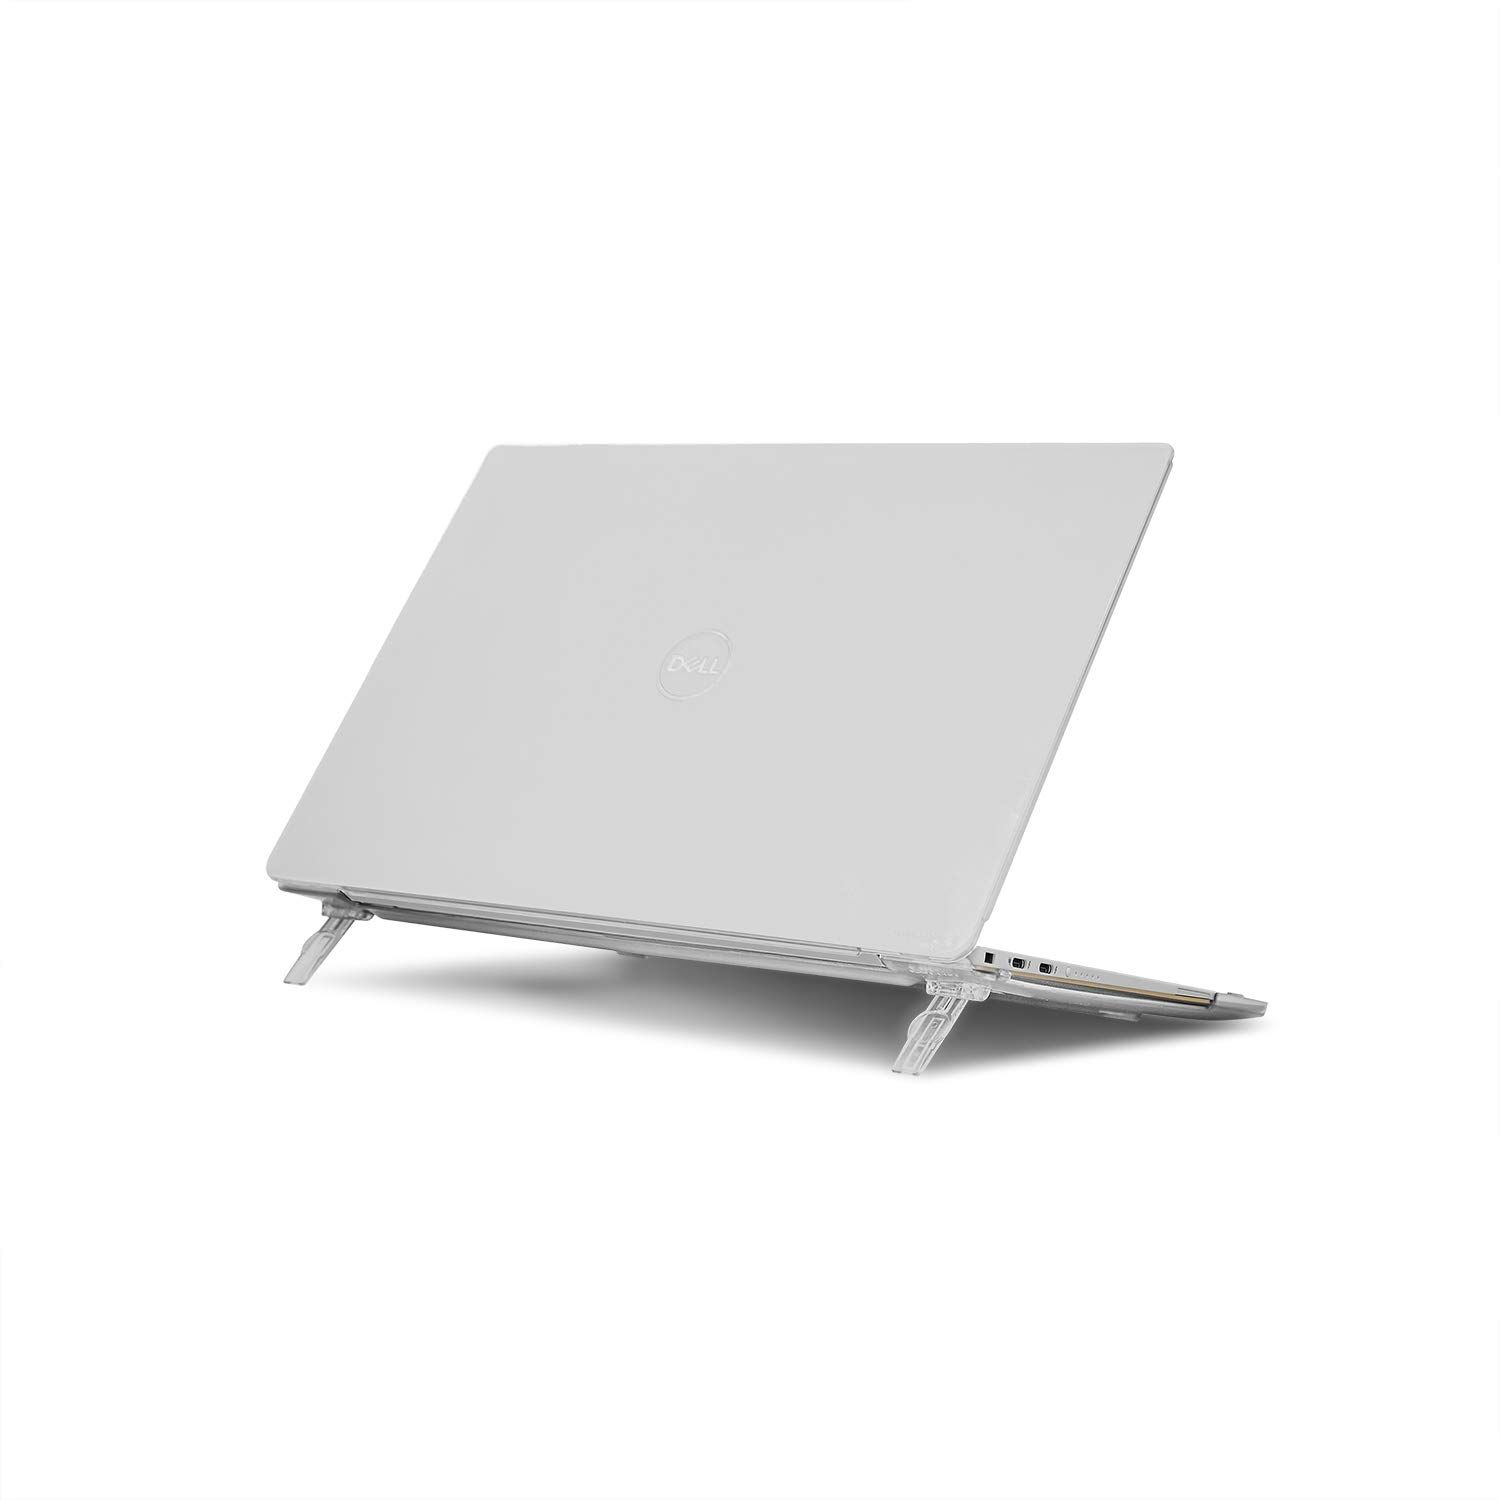 Amazon Com Mcover Hard Shell Case For 13 3 Dell Xps 13 9370 2018 9380 2019 Models Not Fitting Older L321x L322x Dell Xps Ultrabook Dell Xps 13